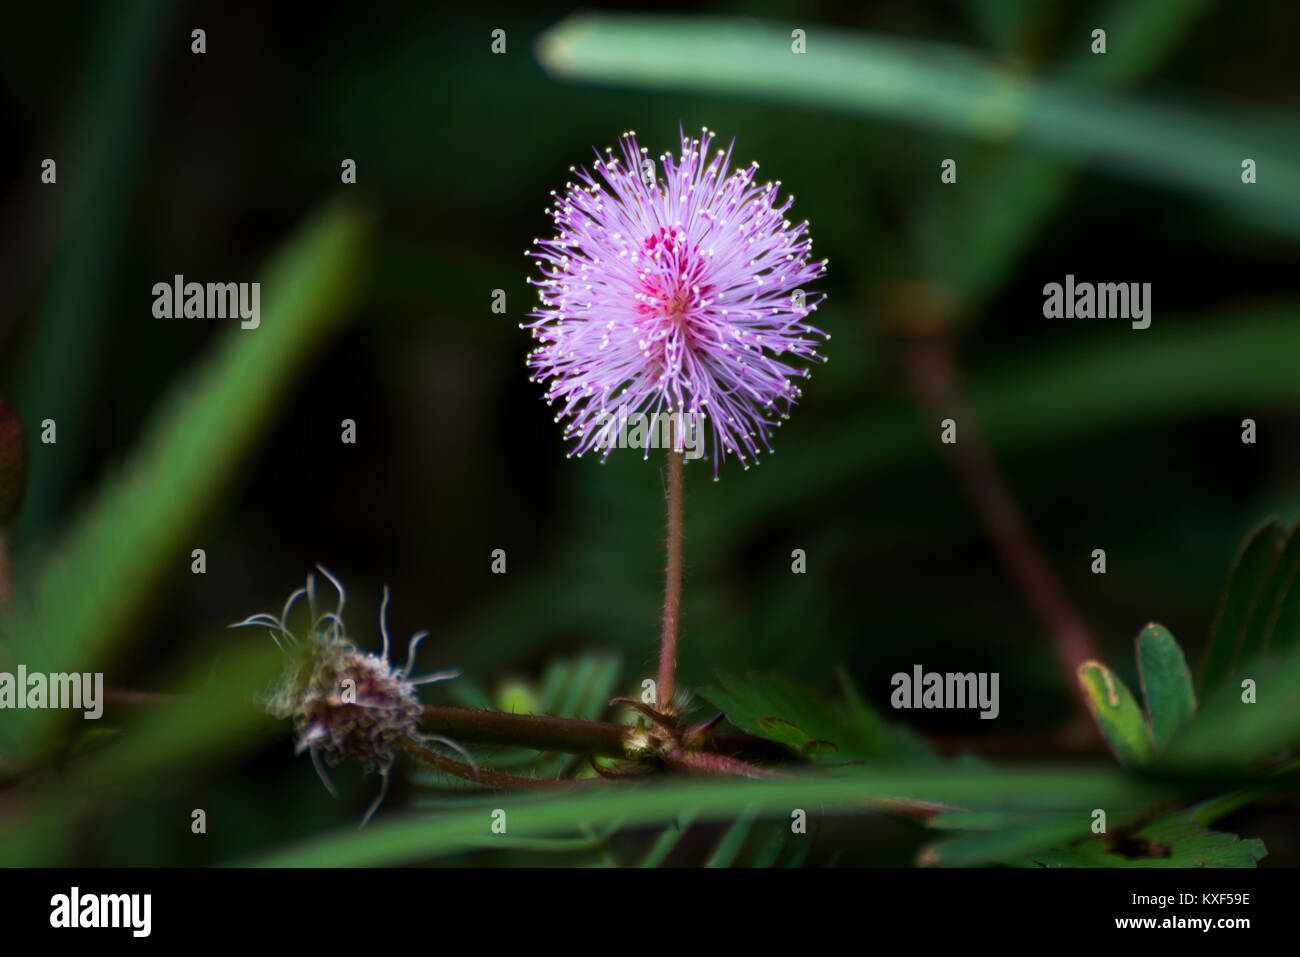 Sensitive plant, Shame plant, Mimosa pudica in Kabini Karnataka India - Stock Image